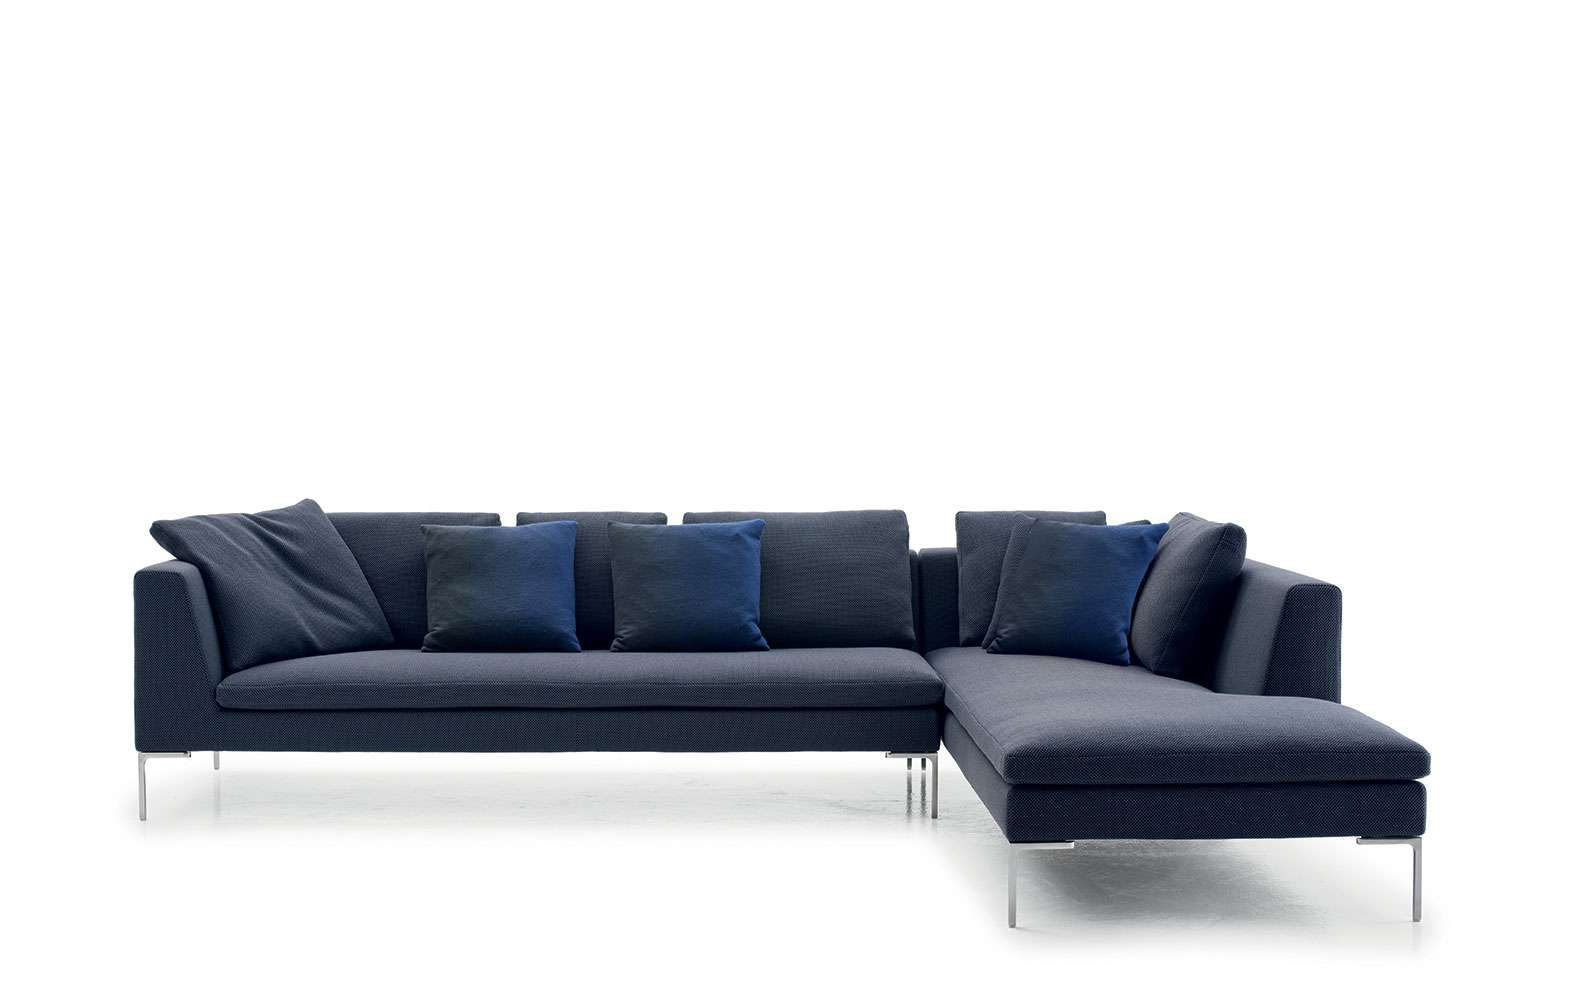 Divano Jean B&b B B Italia Charles Sectional Sofa Replica 2 3 Seater Available